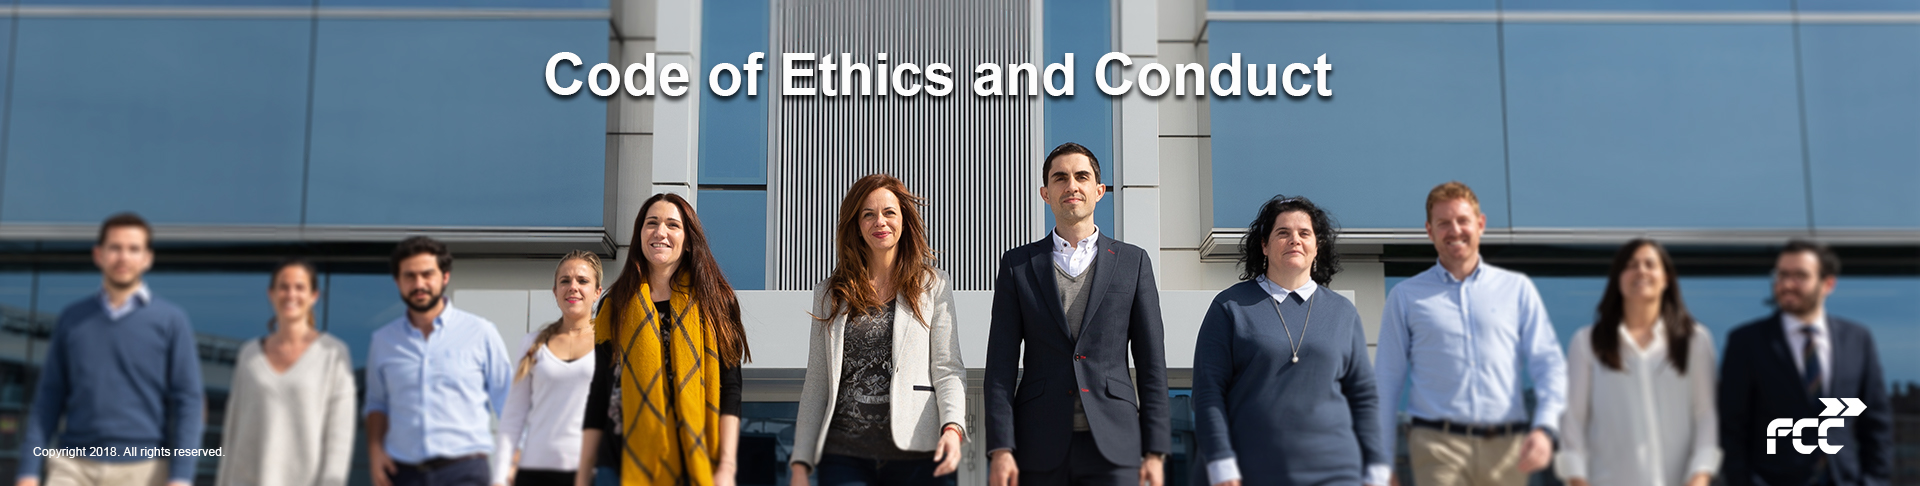 Open Code of Ethics and Conduct PDF (Open in new window)